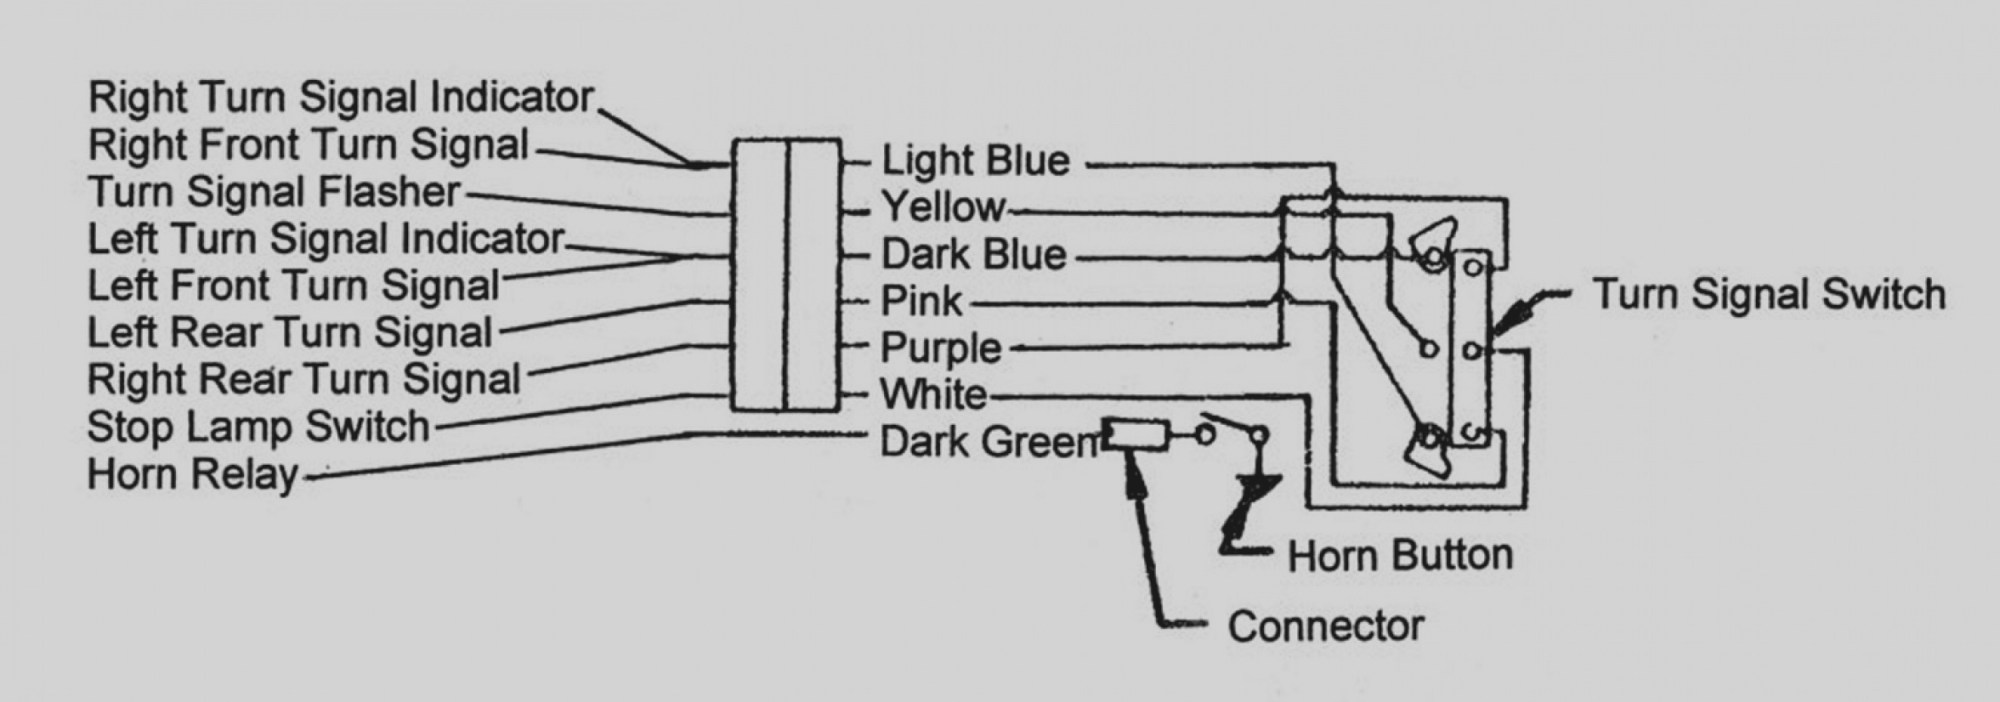 hight resolution of gm turn signal wiring diagram wiring diagram img wiring diagram turn signals motorcycle gm turn signal